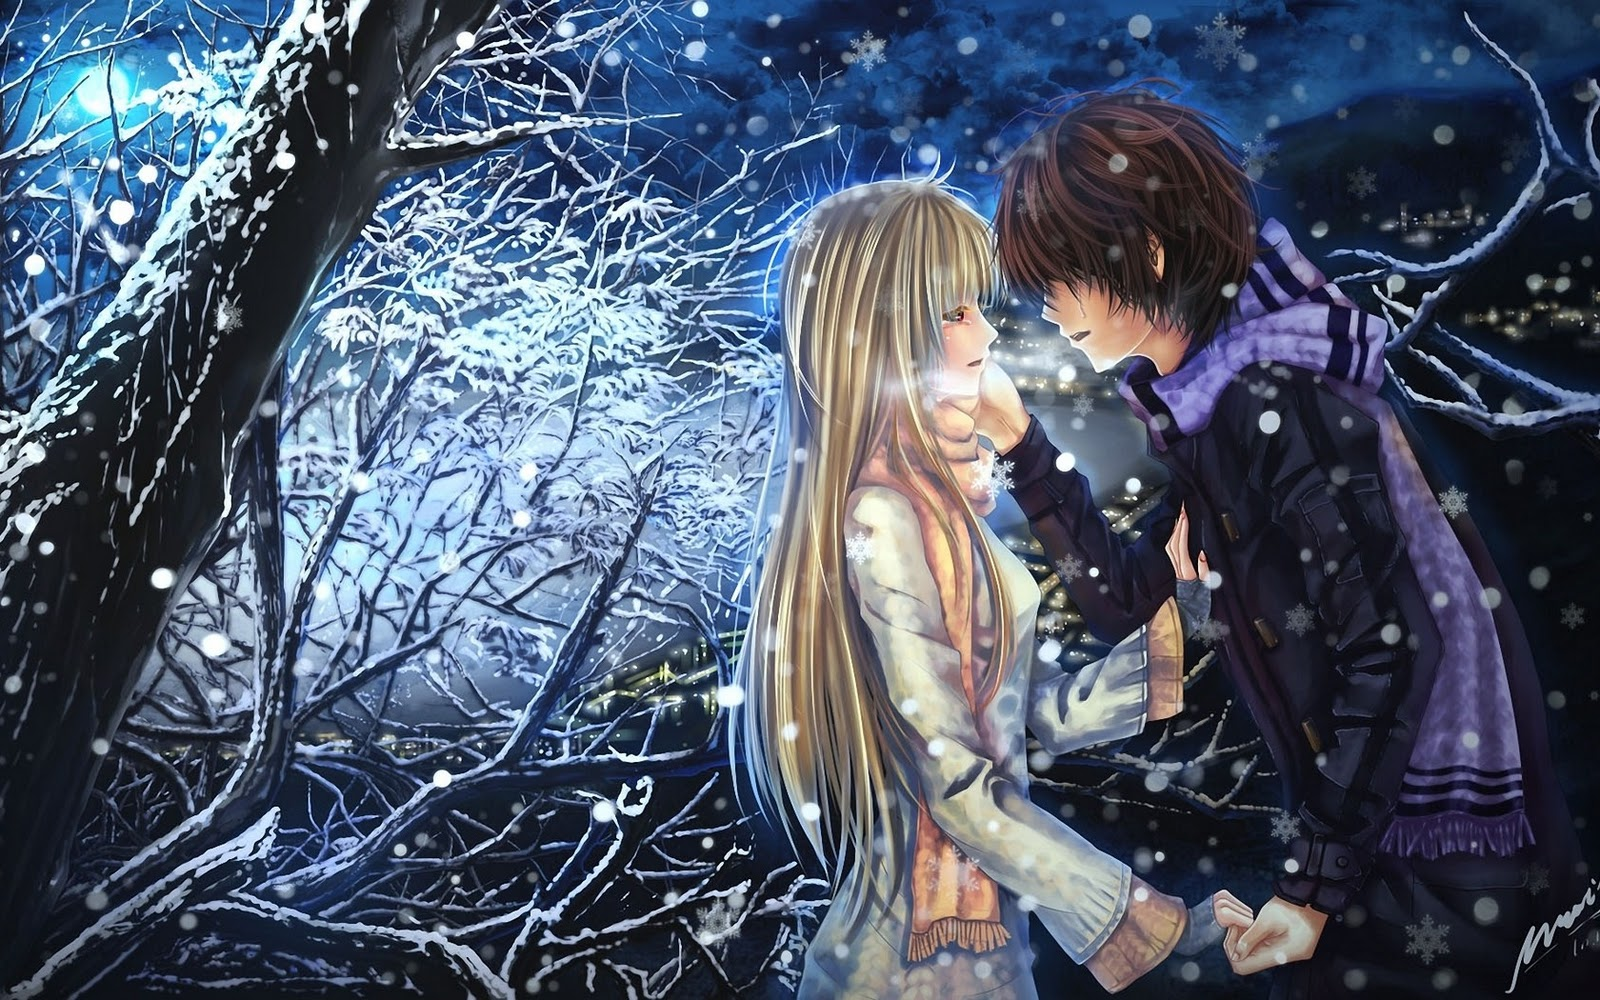 Hd Love couple Wallpaper For Laptop : A2Z Wallpapers: Anime couples In Love Wallpapers